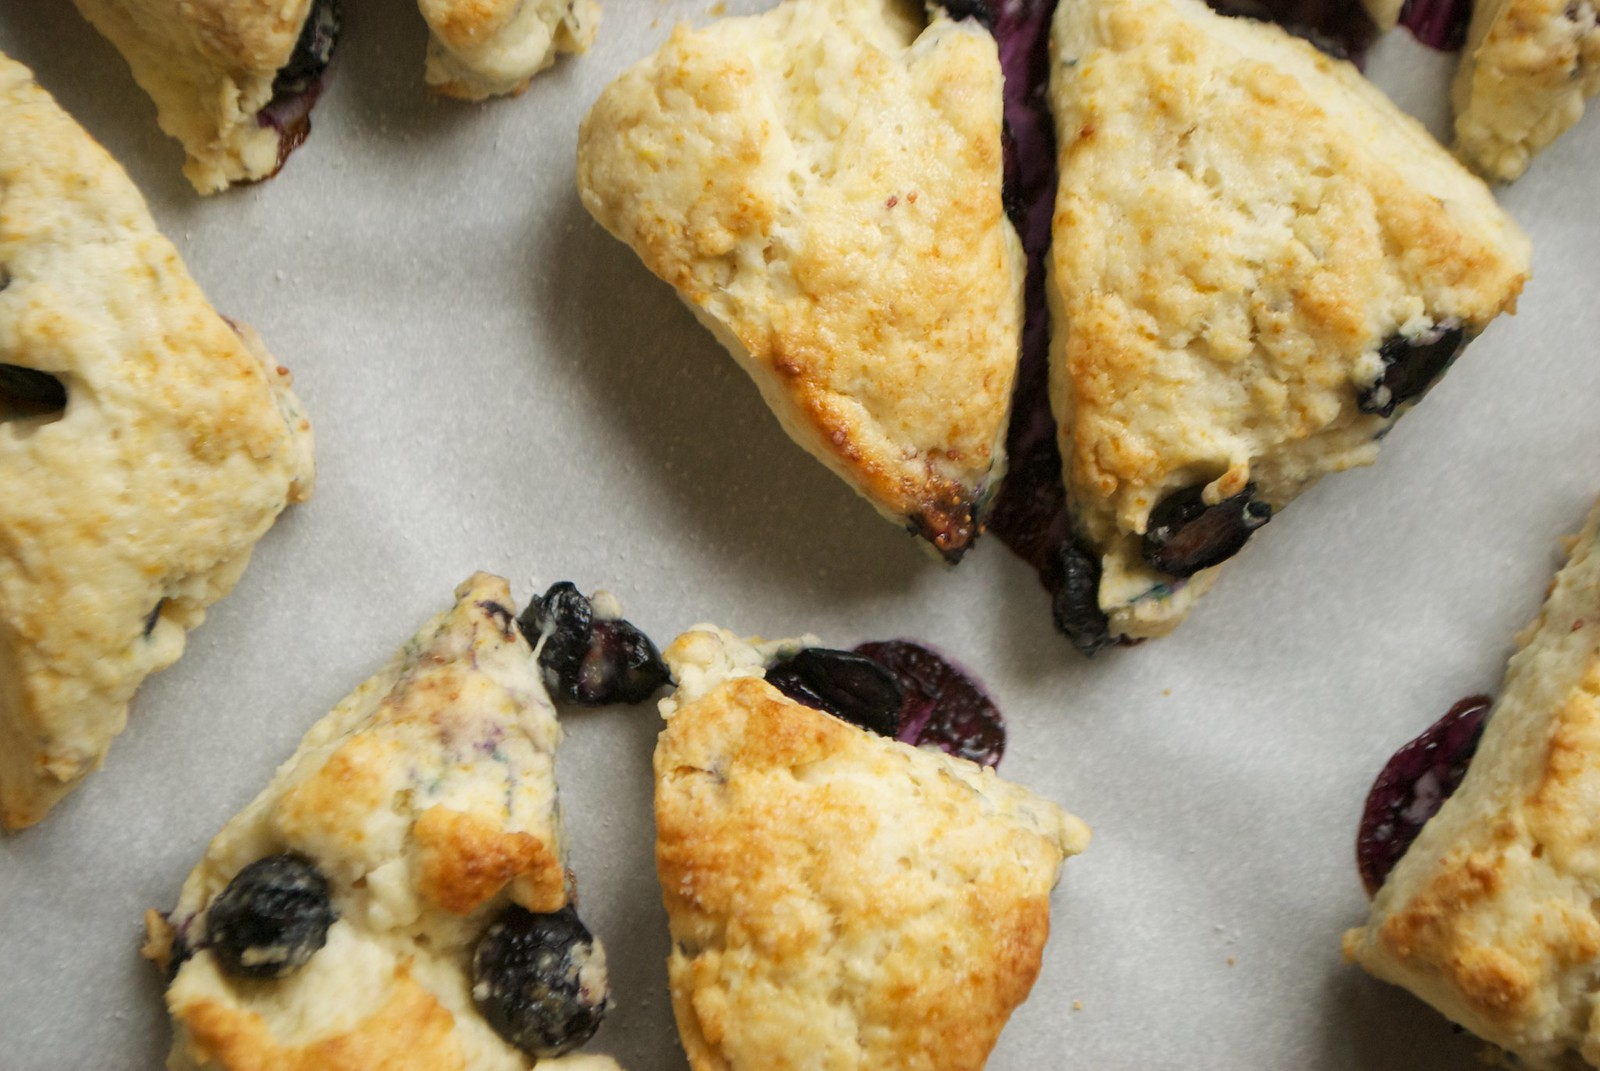 These mini blueberry cream scones will be an instant hit at brunch!